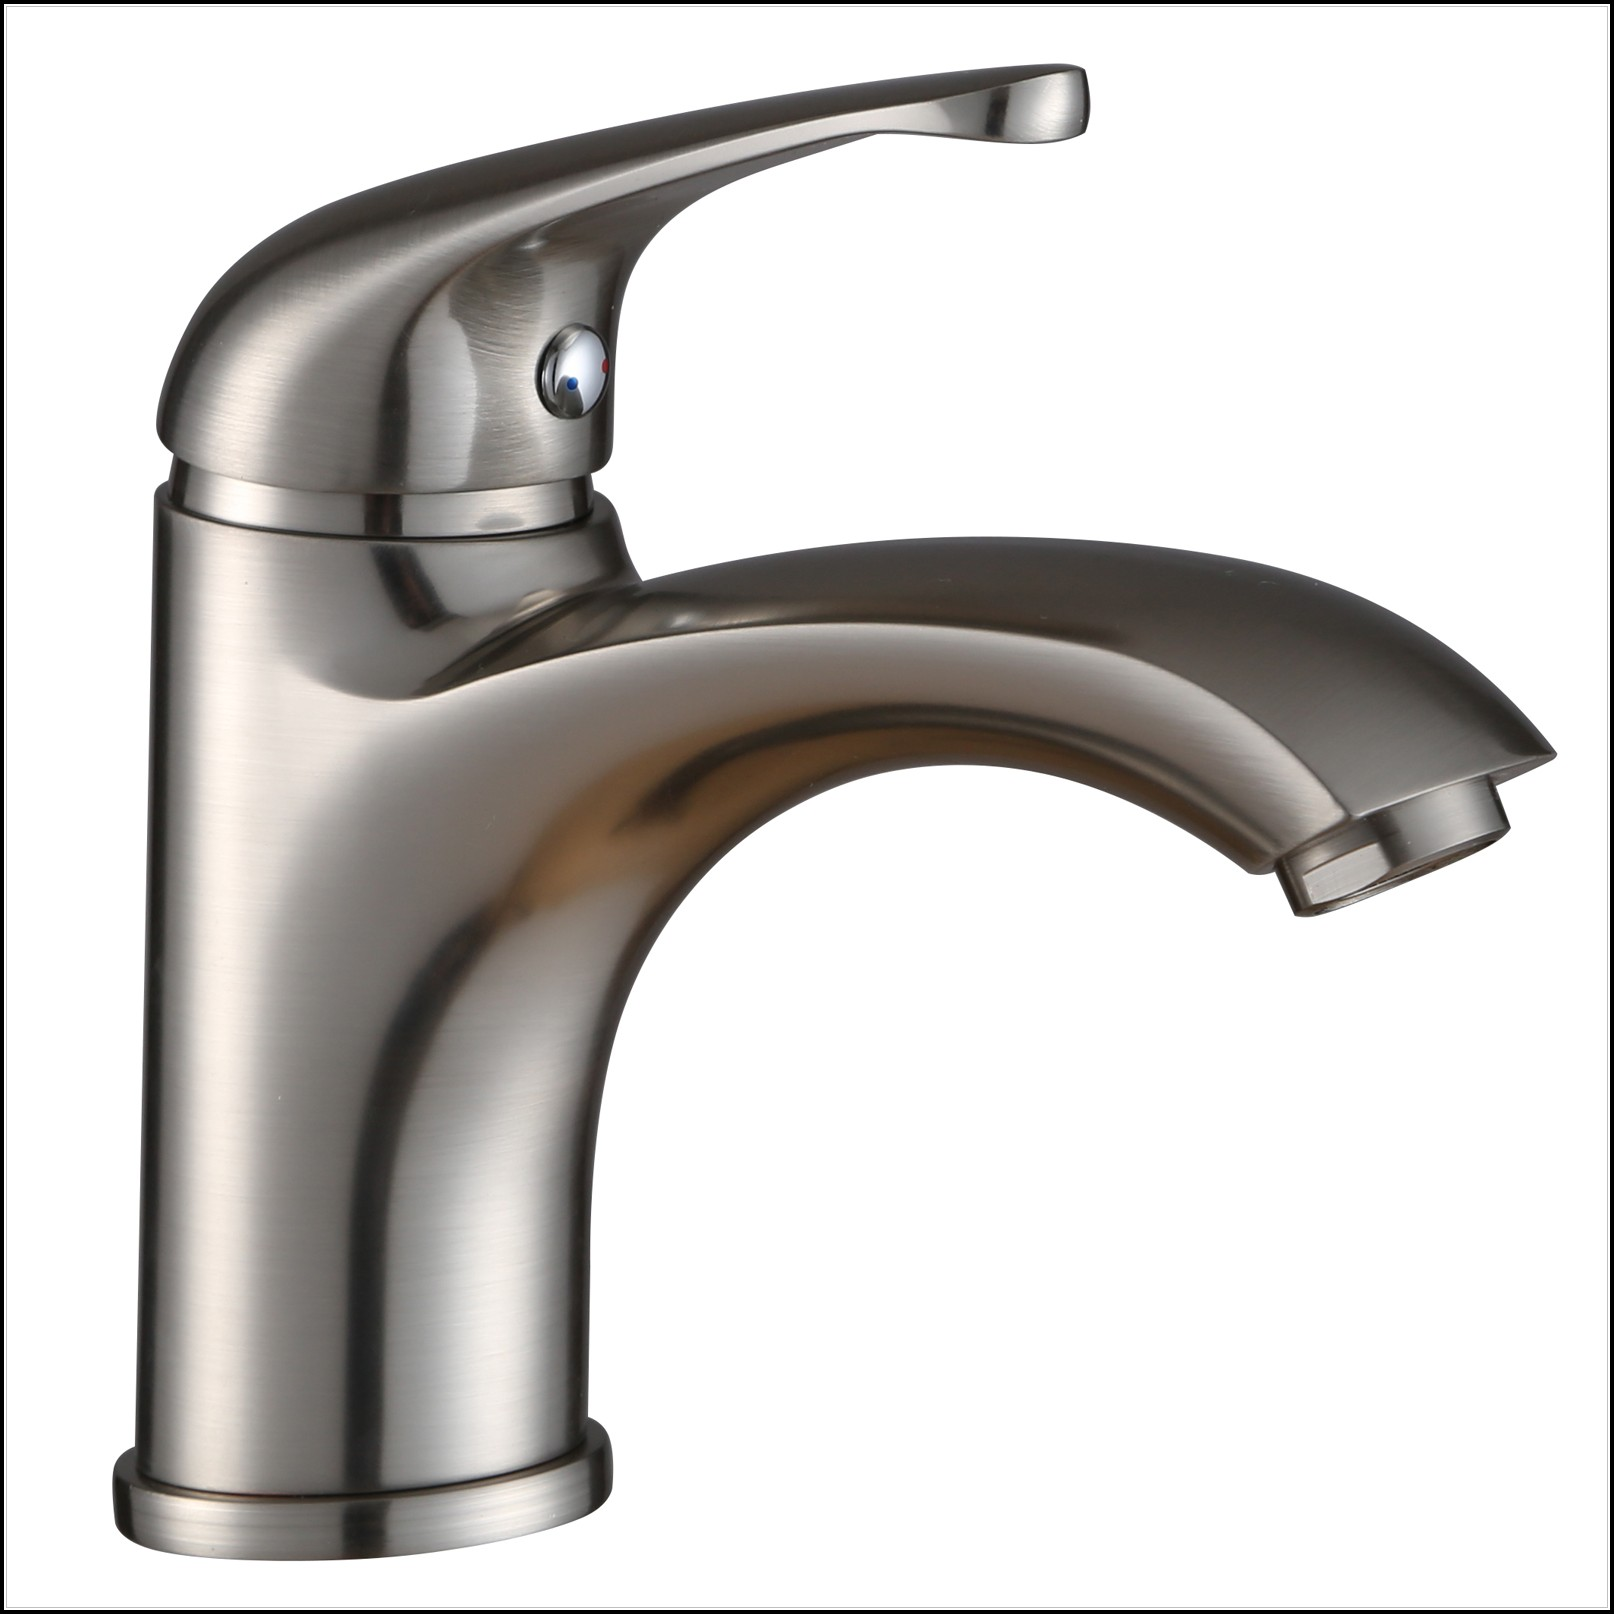 Brushed Nickel Single Handle Bathroom Faucet